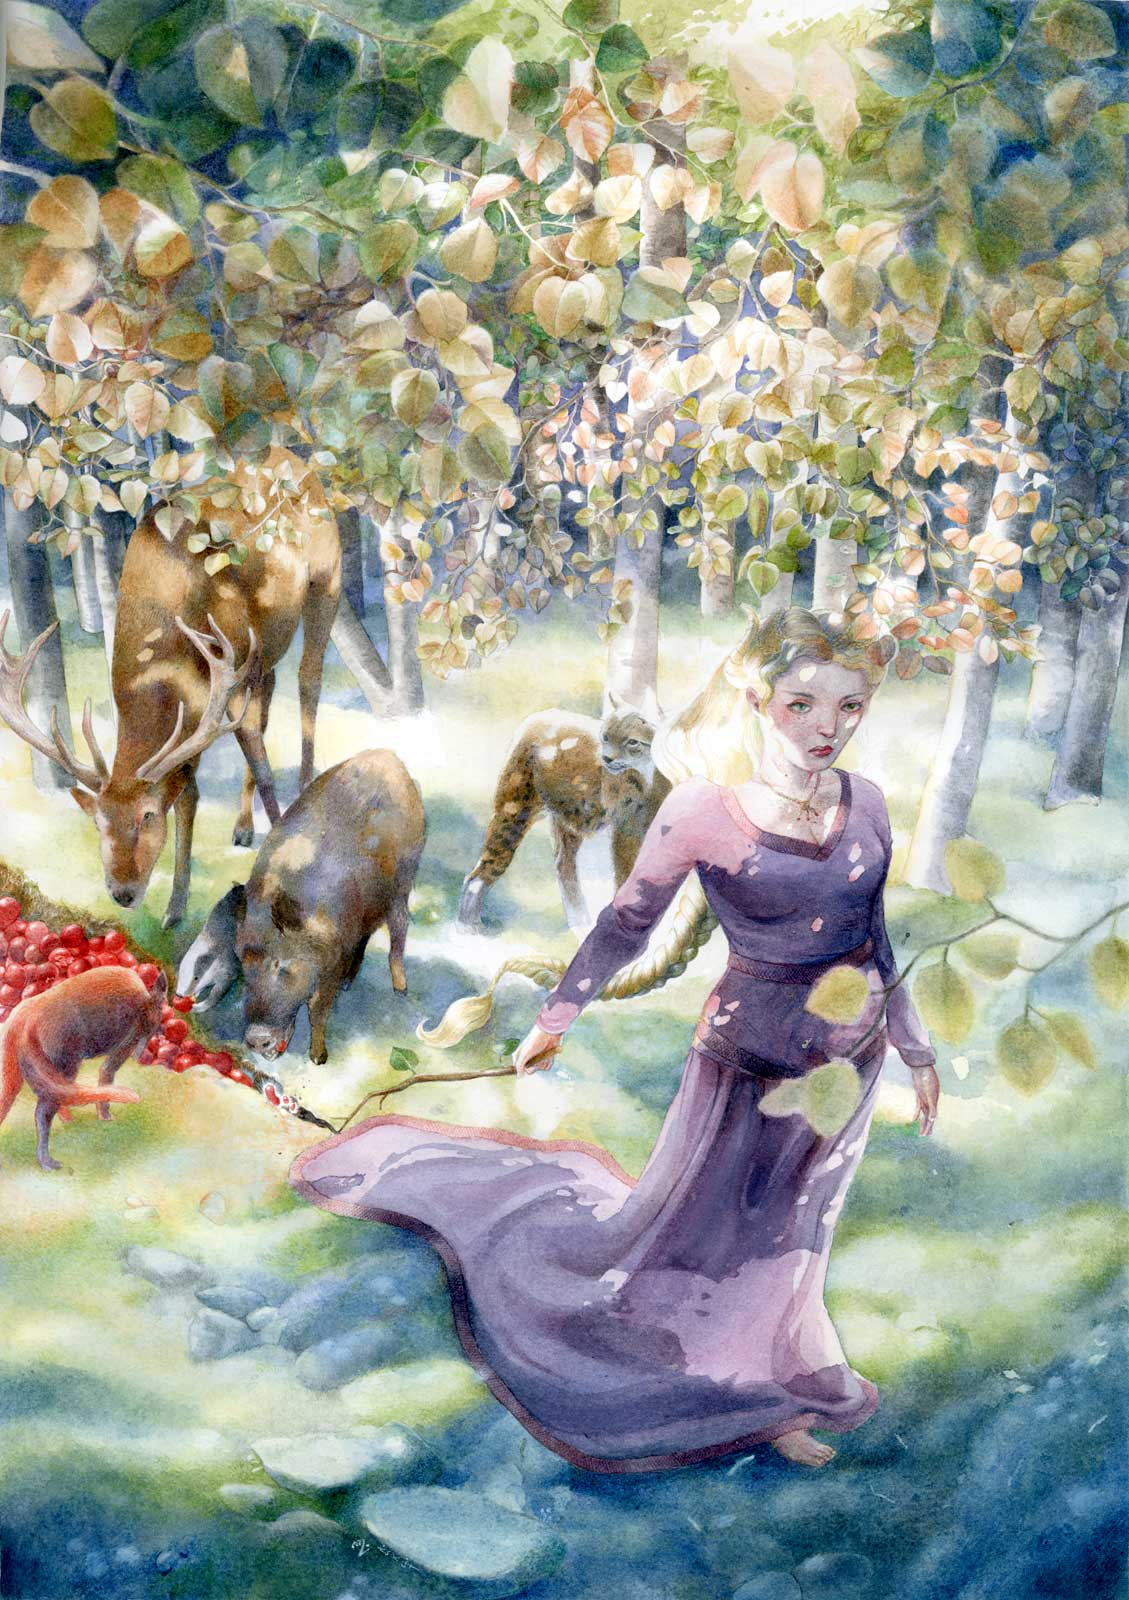 A wood nymph in a medieval gown walks through the forest bringing forth plenty of food for its inhabitants.